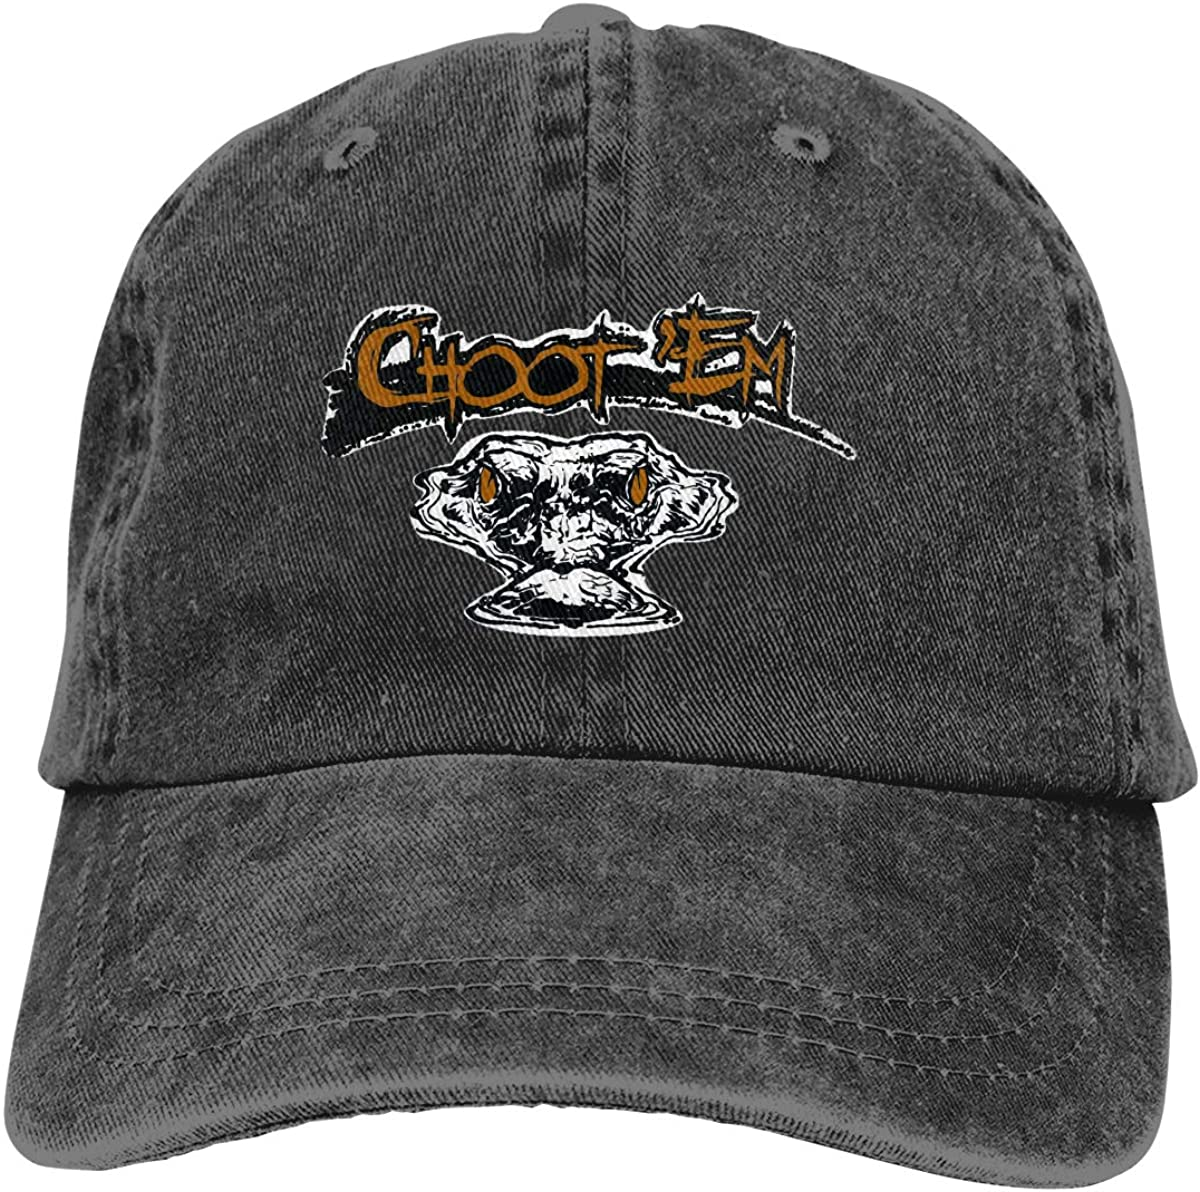 Swamp People Choot'em Baseball Caps Trucker Unisex H Challenge the lowest price of Japan Vintage Dad Cheap mail order specialty store